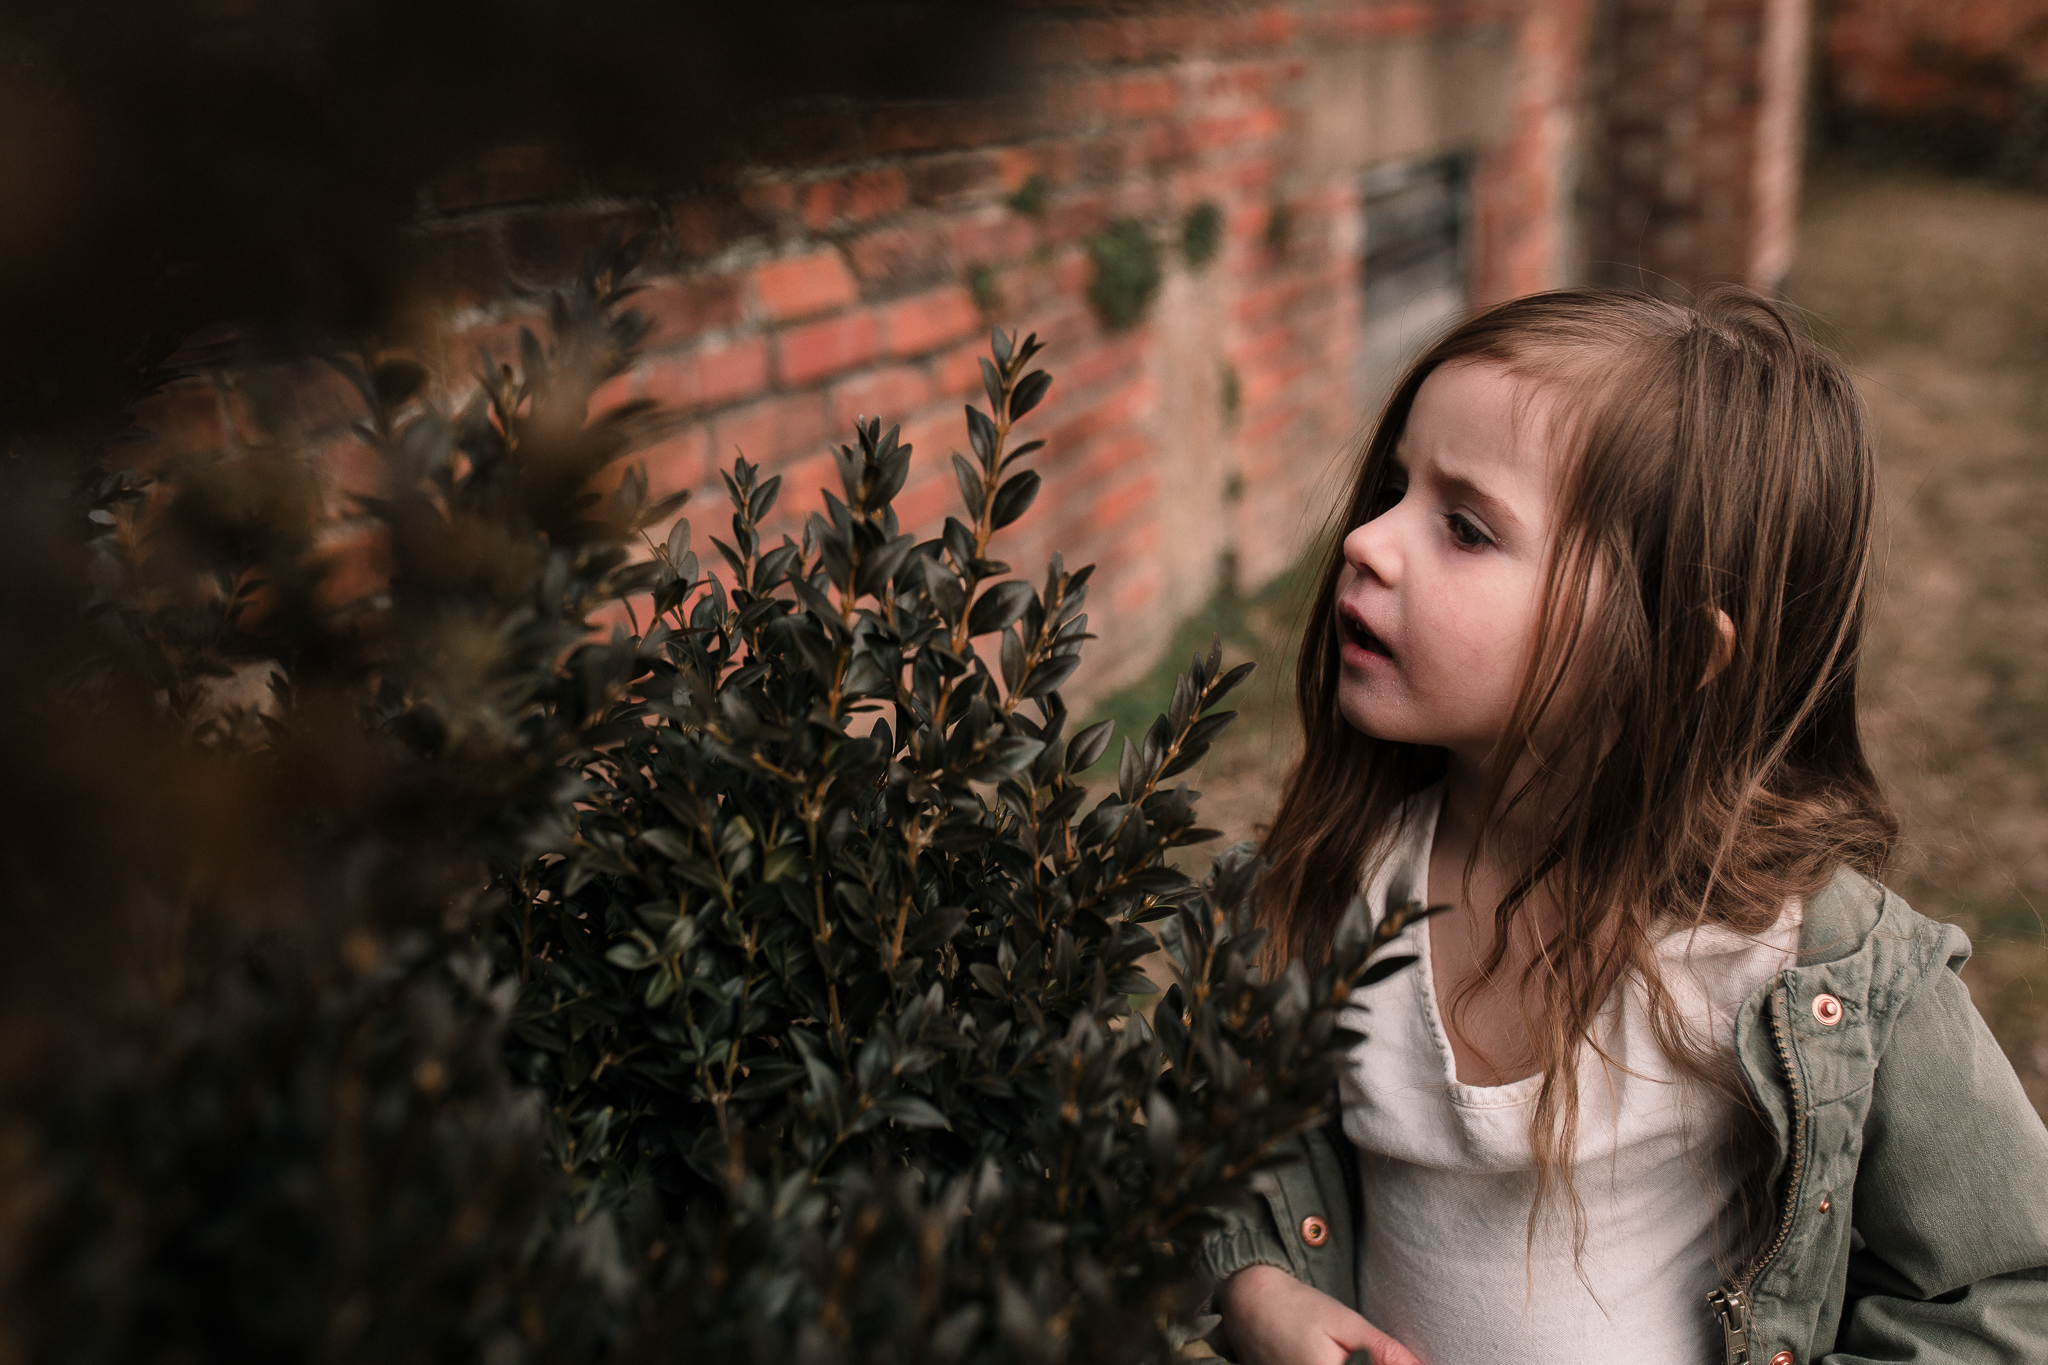 girl exploring brick wall plant leaves bush Morven Park lifestyle documentary family Ashburn Loudoun northern Virginia  childhood Marti Austin Photography